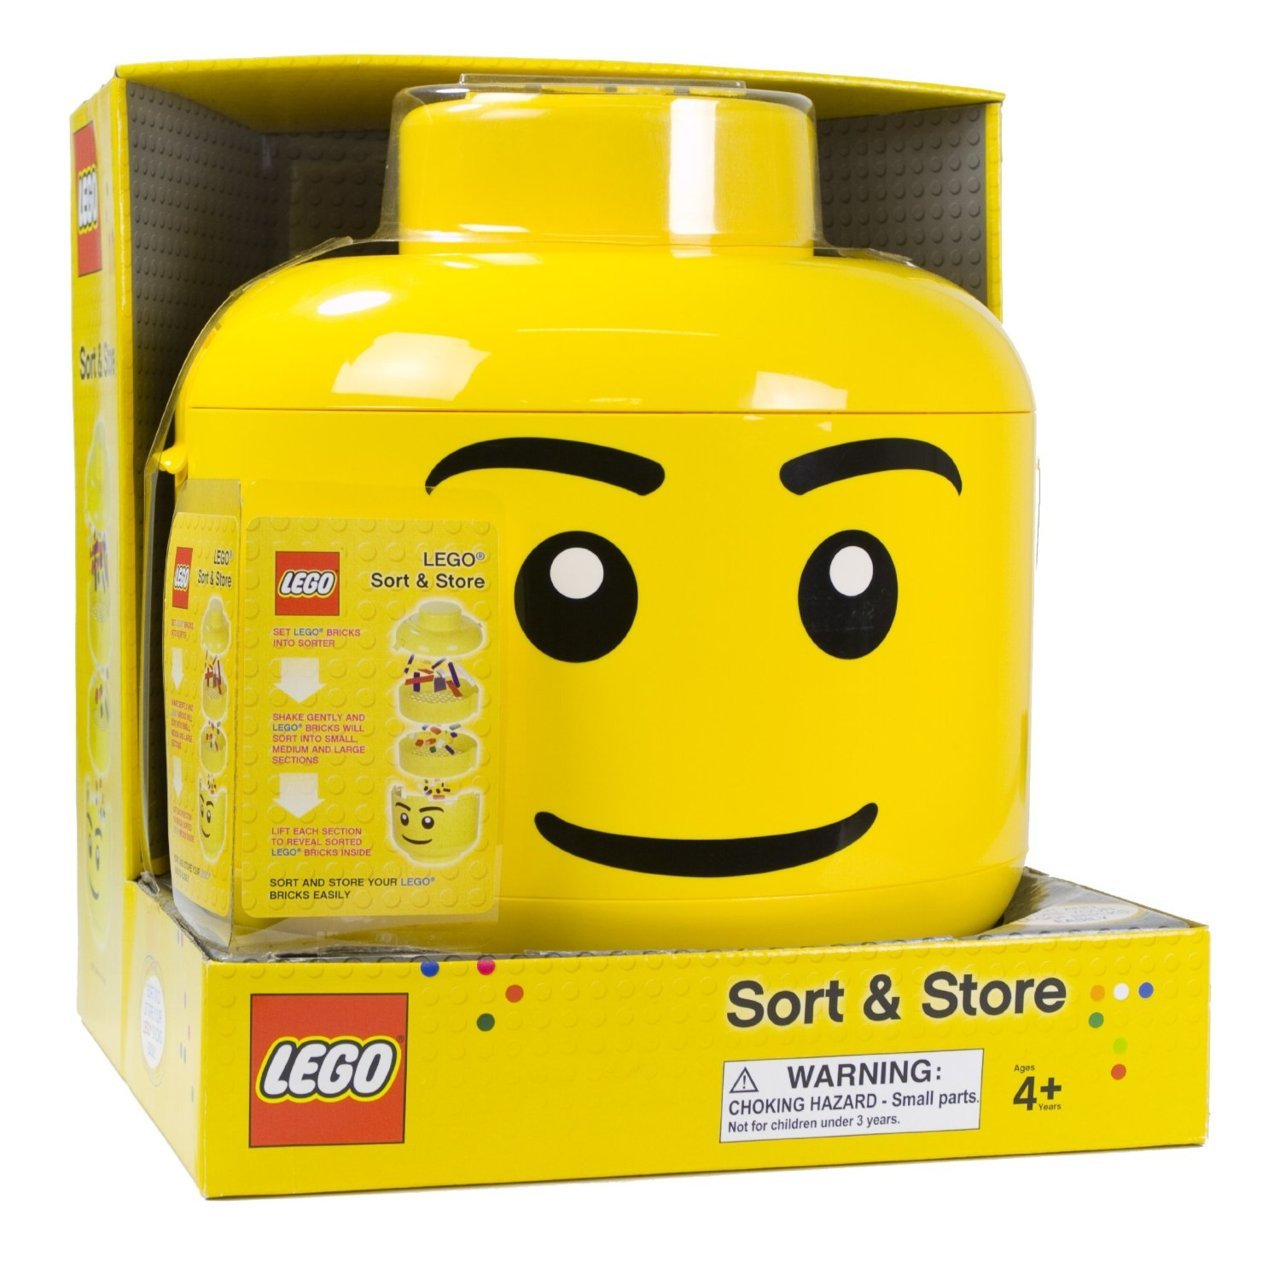 Gift Idea #23: Lego Sort and Store $40 Pretty ingenious way to clean up little kiddies' lego mess… and to save everyone from accidentally-stepping-on-a-darn-hard-lego pain.